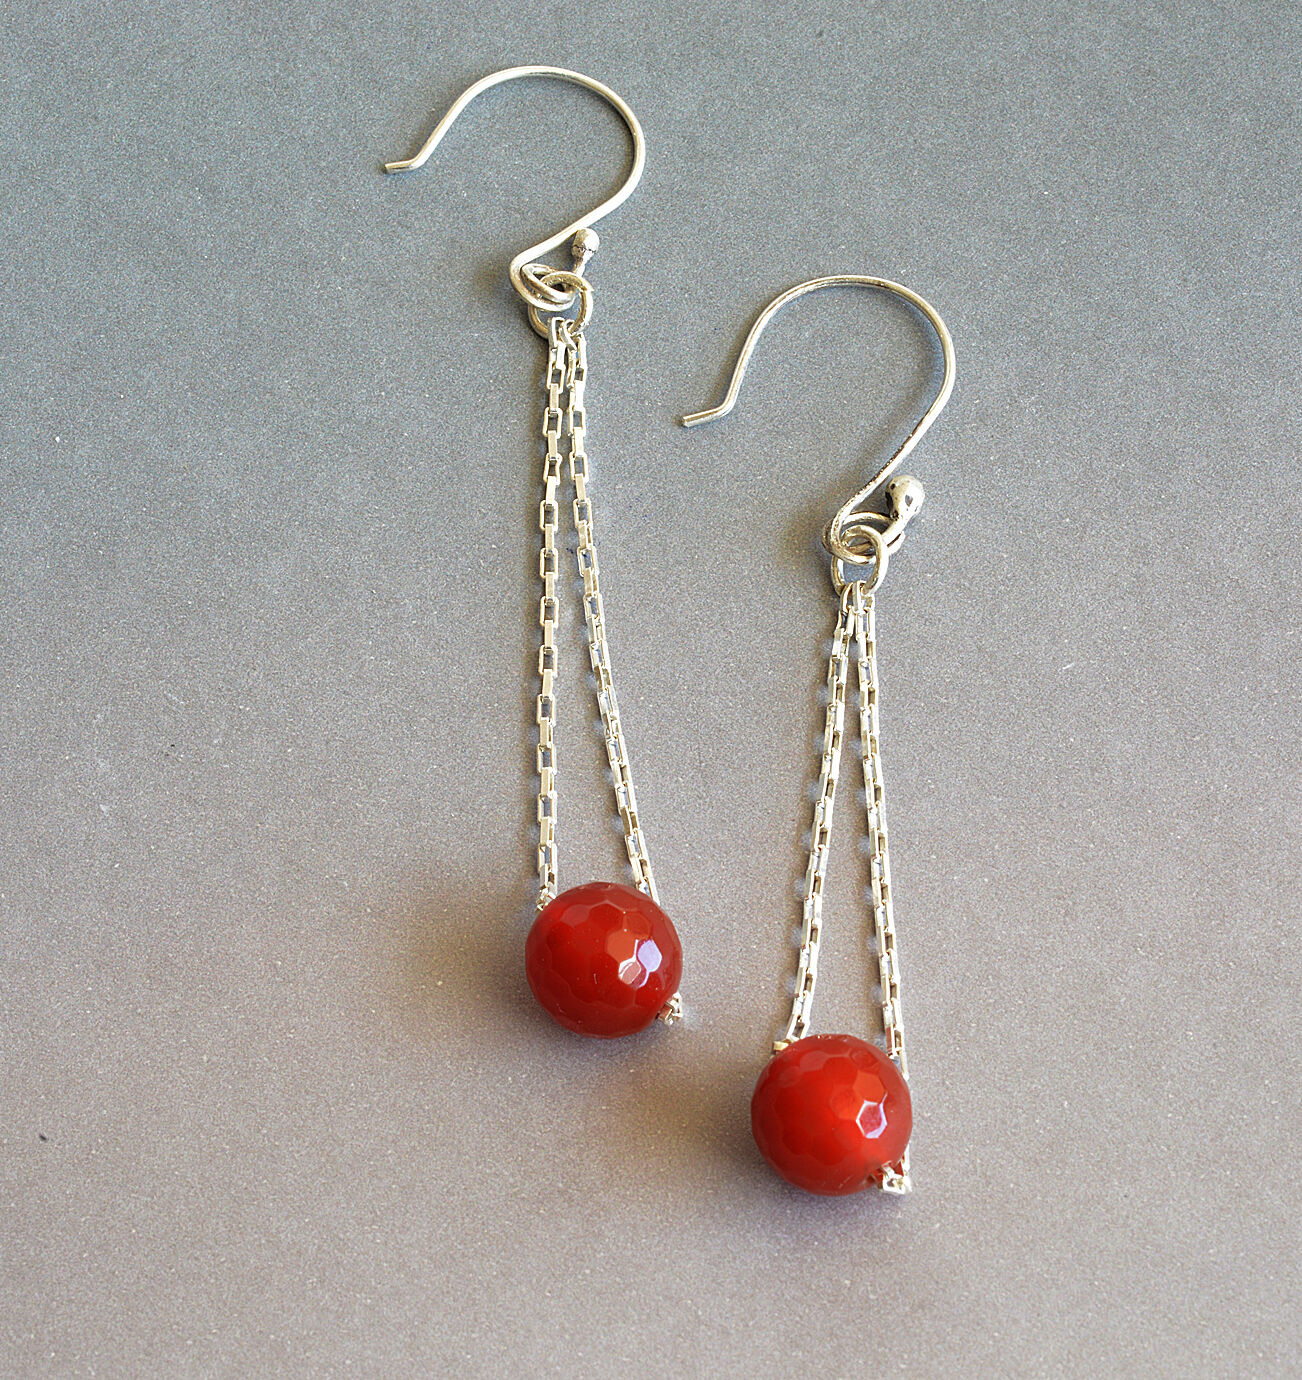 E18010 - Silver chains with faceted carnelian stone beads